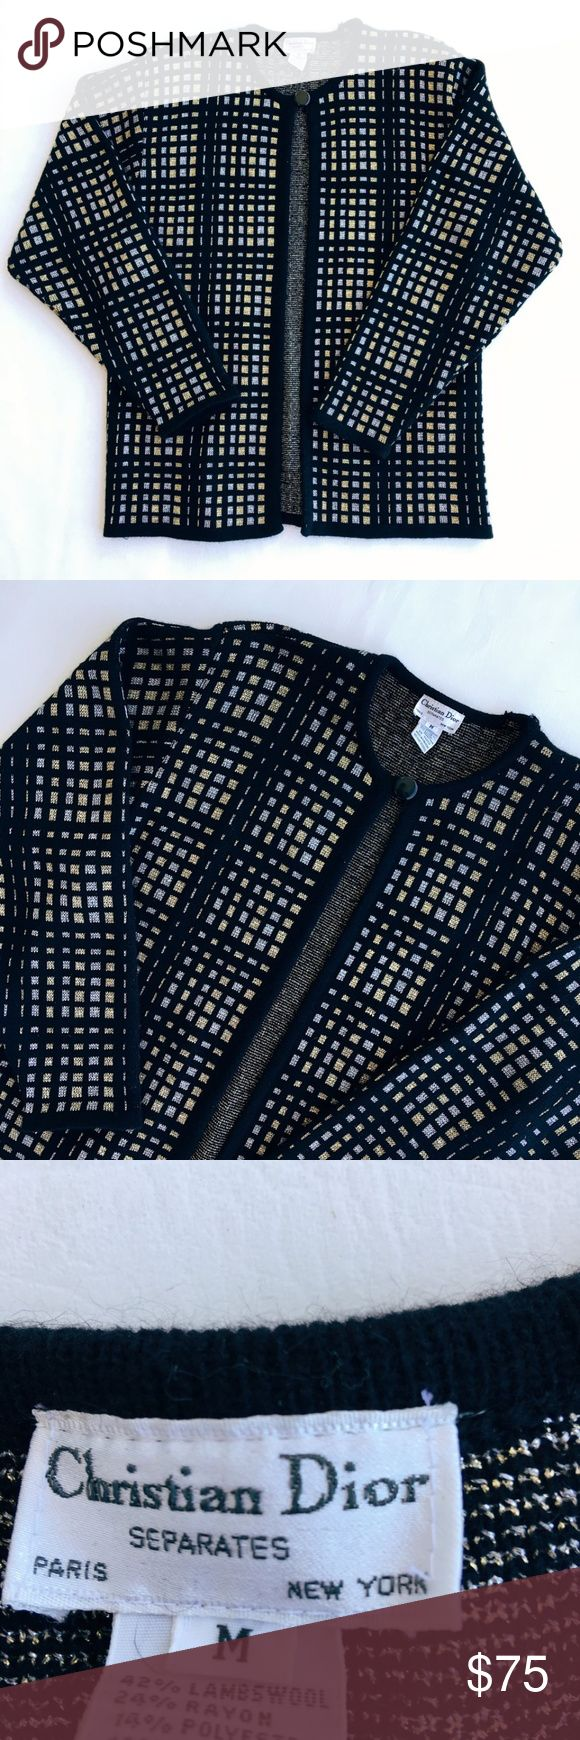 VTG Christian Dior Black Checkered Button Cardigan Vintage Christian Dior black checkered pattern one button cardigan sweater 🖤 great condition / wool rayon polyester and rabbits hair / size women's medium Christian Dior Sweaters Cardigans